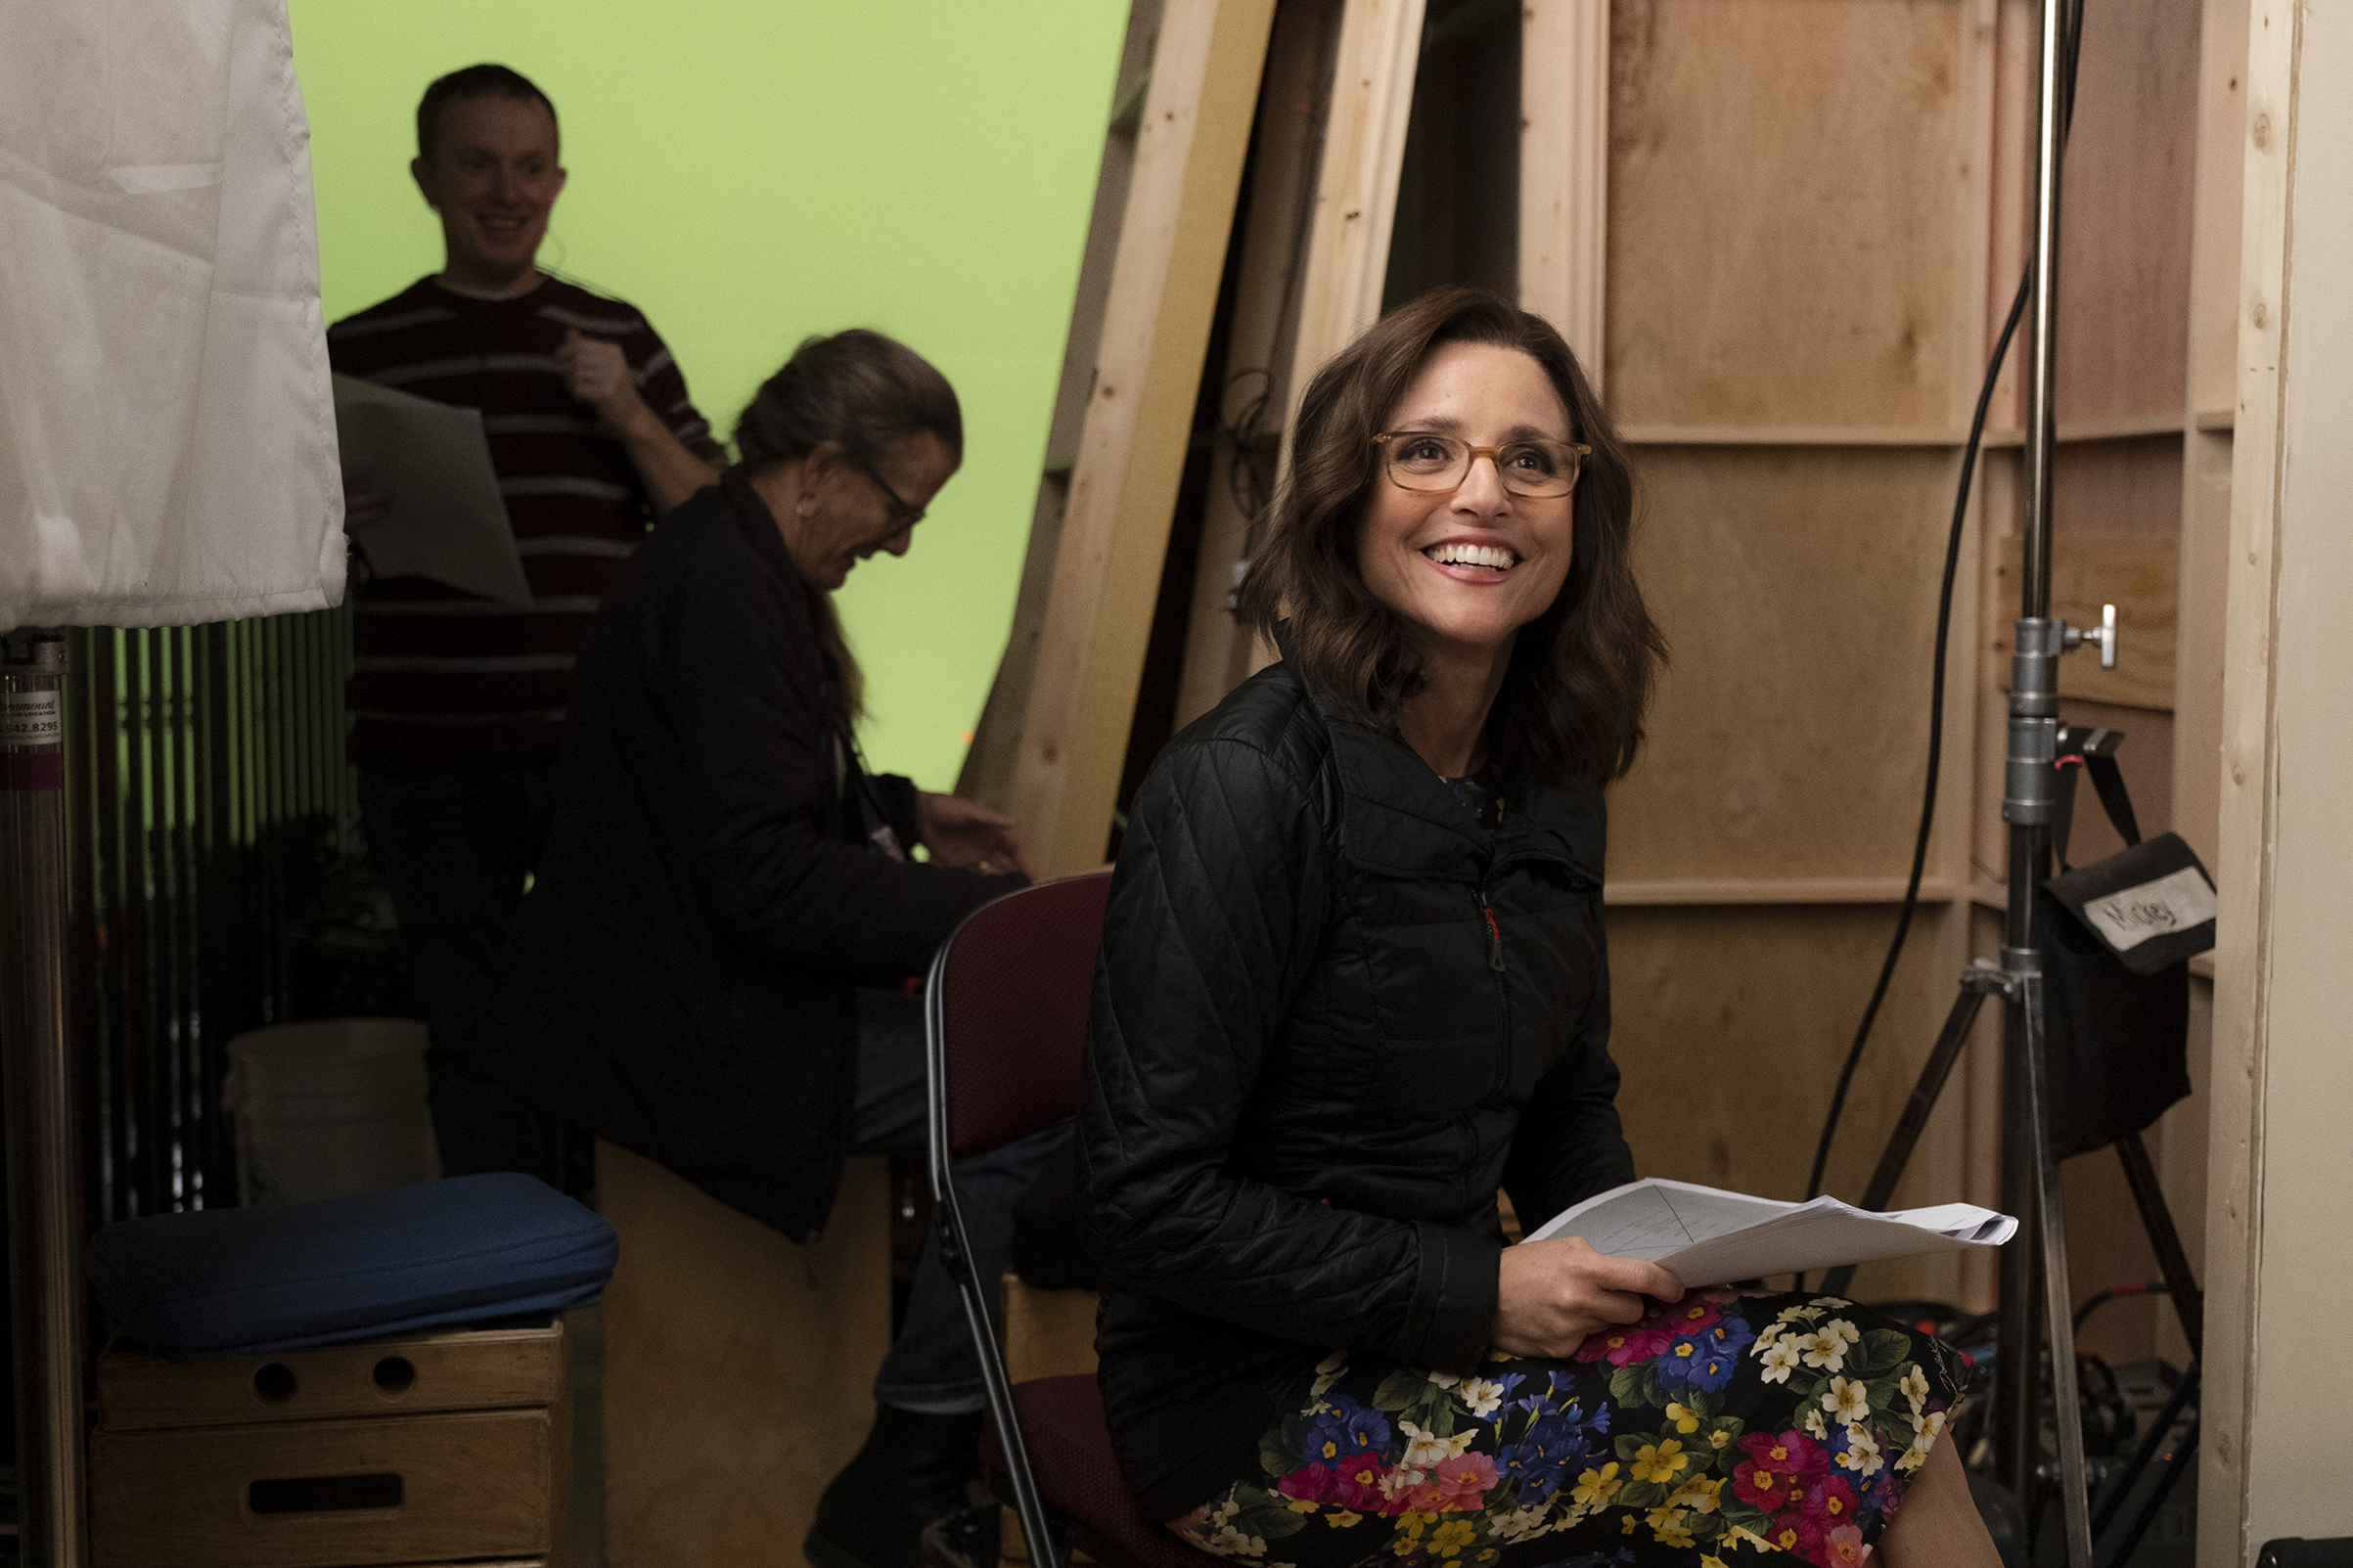 Behind the scenes on the set of Veep